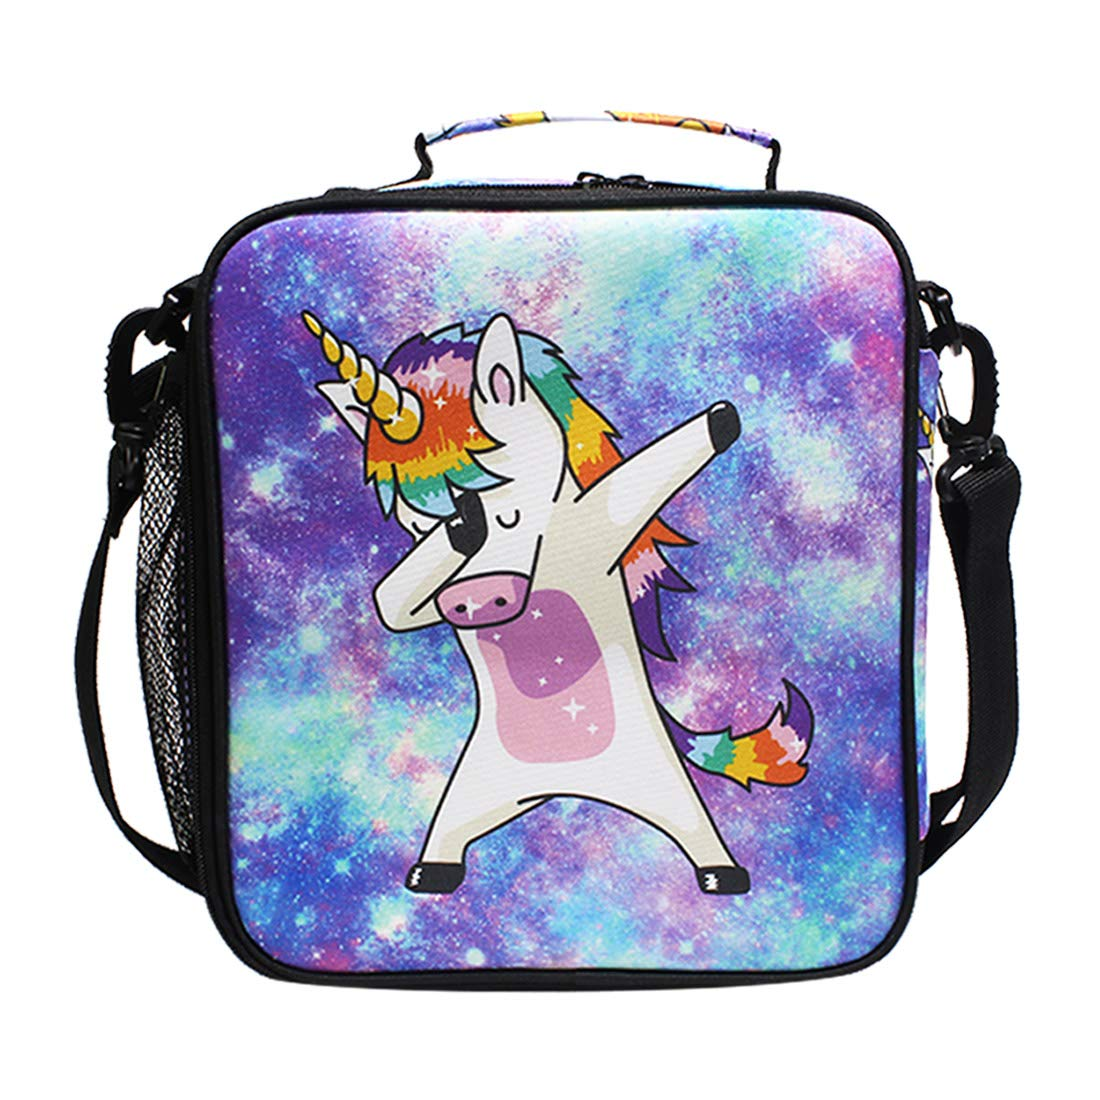 Unicorn Kids Lunch Box Insulated Lunch Bag Large Freezable Lunch Boxes Cooler Meal Prep Lunch Tote Universe Galaxy with Shoulder Strap for Boys Girls